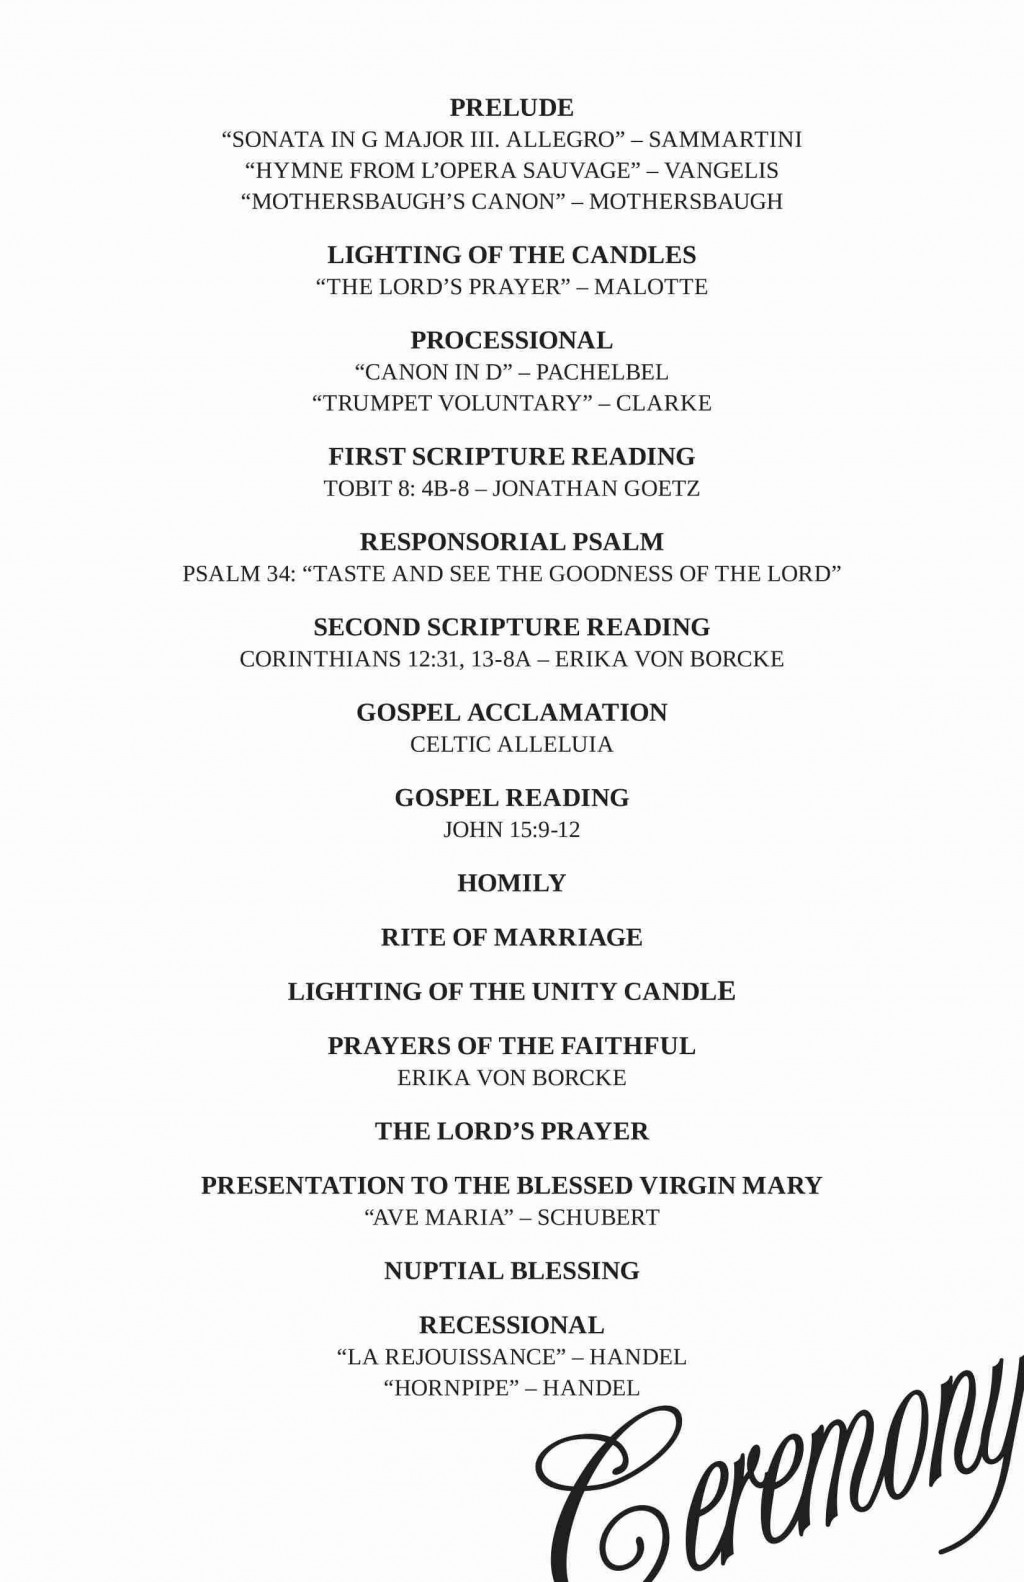 003 Stunning Wedding Reception Programme Template Highest Quality  Program Microsoft Word Free Downloadable PdfLarge